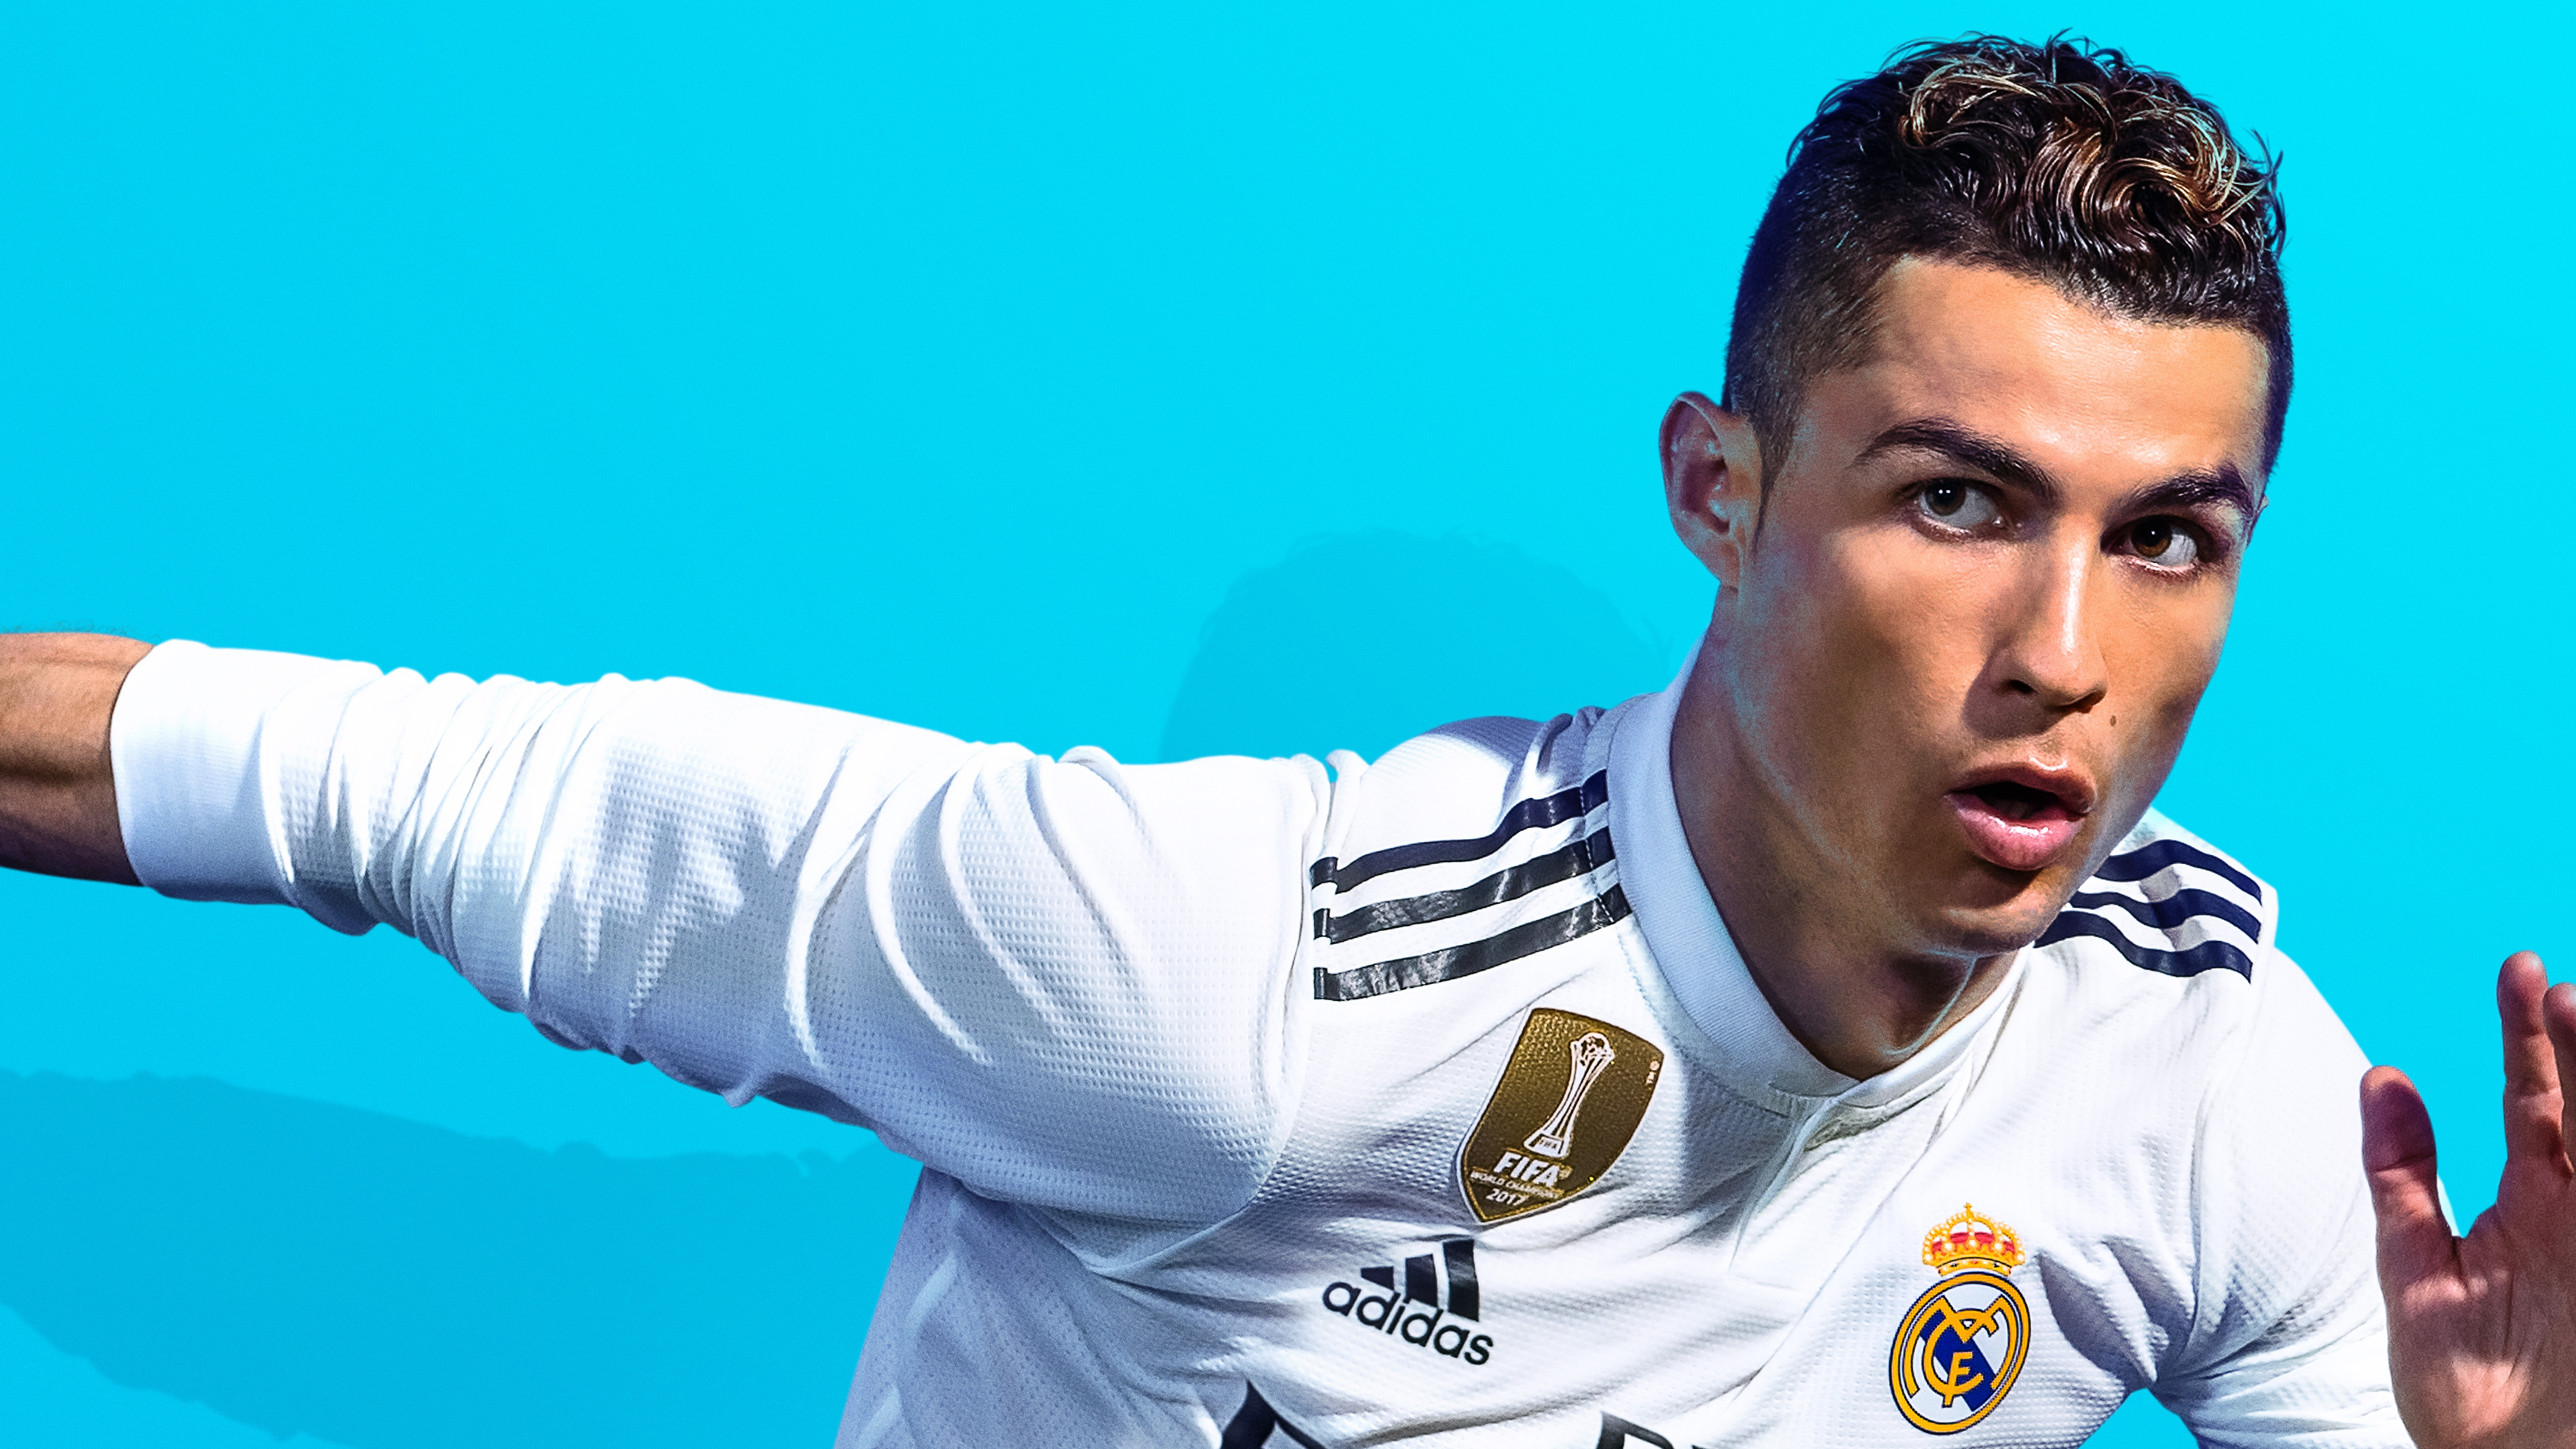 Cristiano Ronaldo Fifa 19 8k Hd Games 4k Wallpapers Images Backgrounds Photos And Pictures